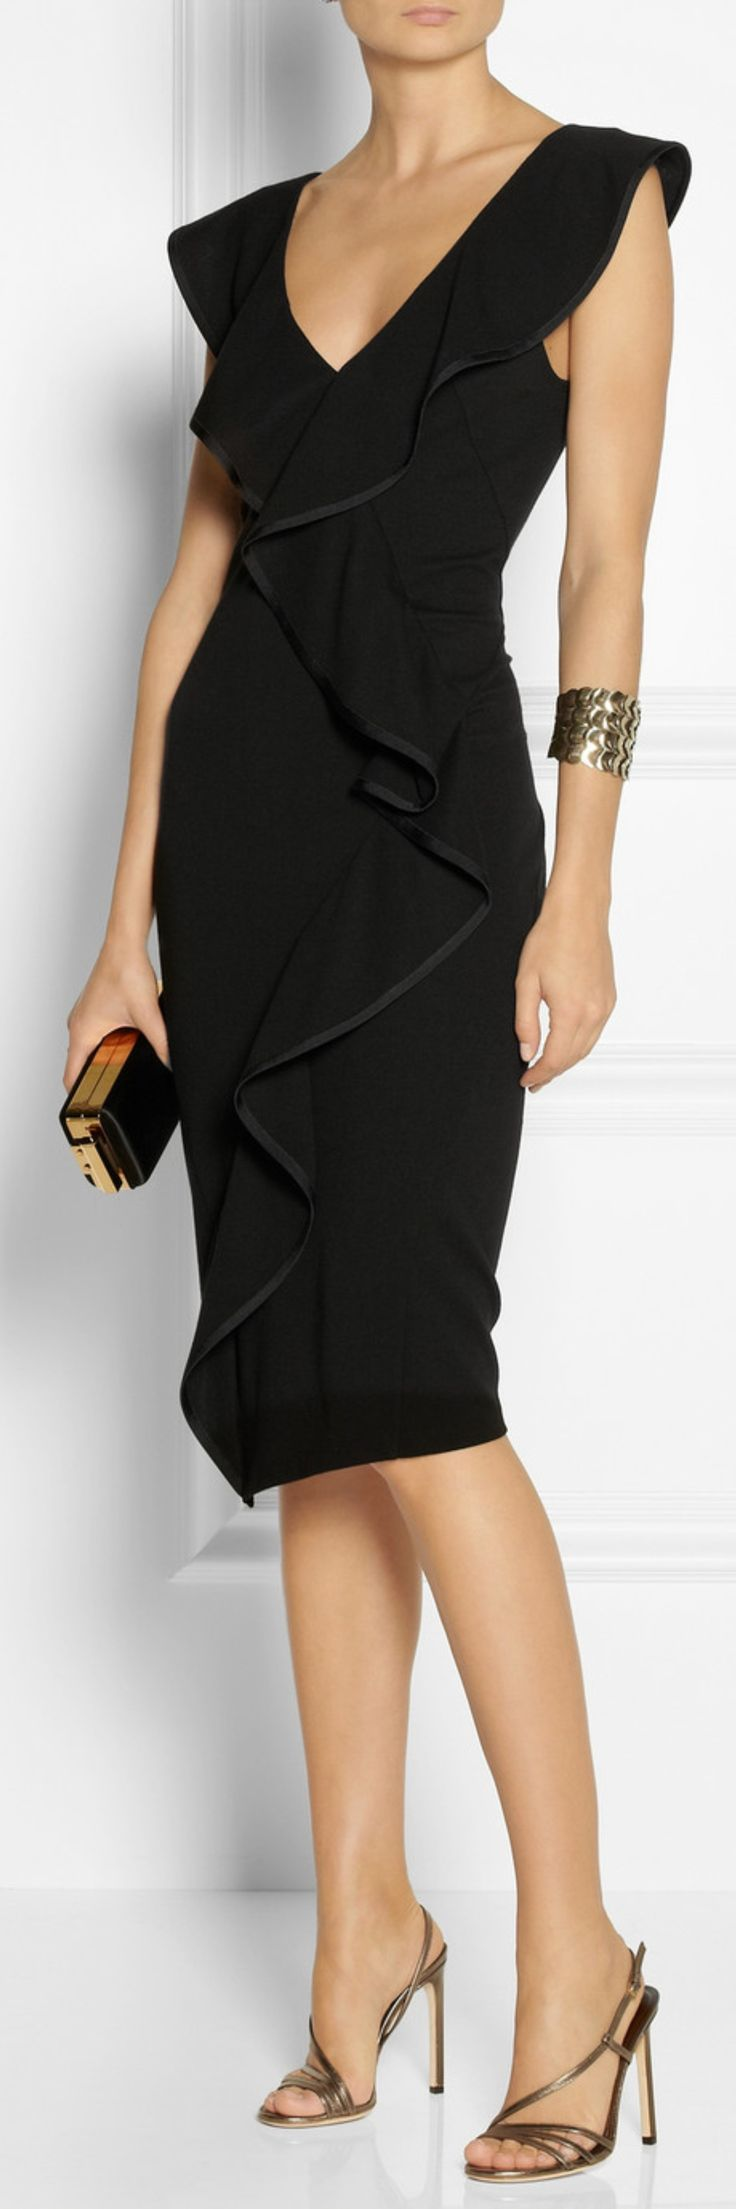 Donna Karan LBD: To see more such CUTE stuff check out Pinterest: >>>>>>@nadyareii <<<<<<<<<for styles like this!!!!